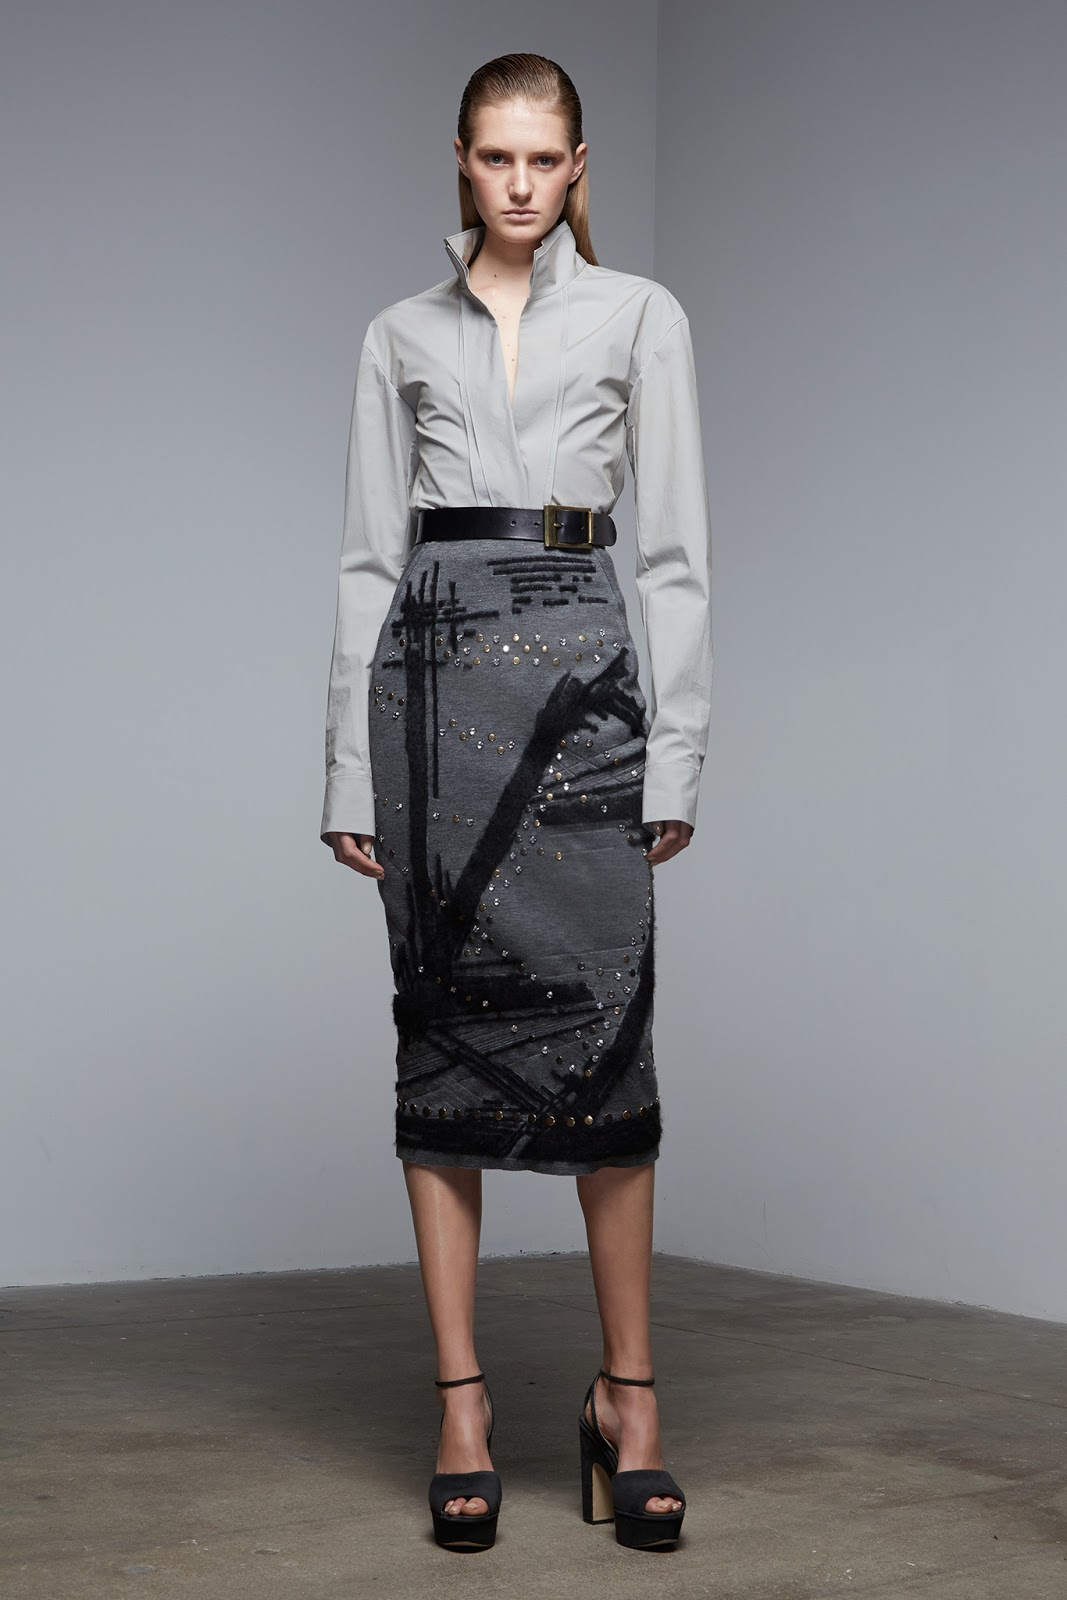 transitional style inspiration from the catwalk / how to wear midi skirt in autumn / Donna Karan / via fashionedbylove.co.uk / british fashion & style blog